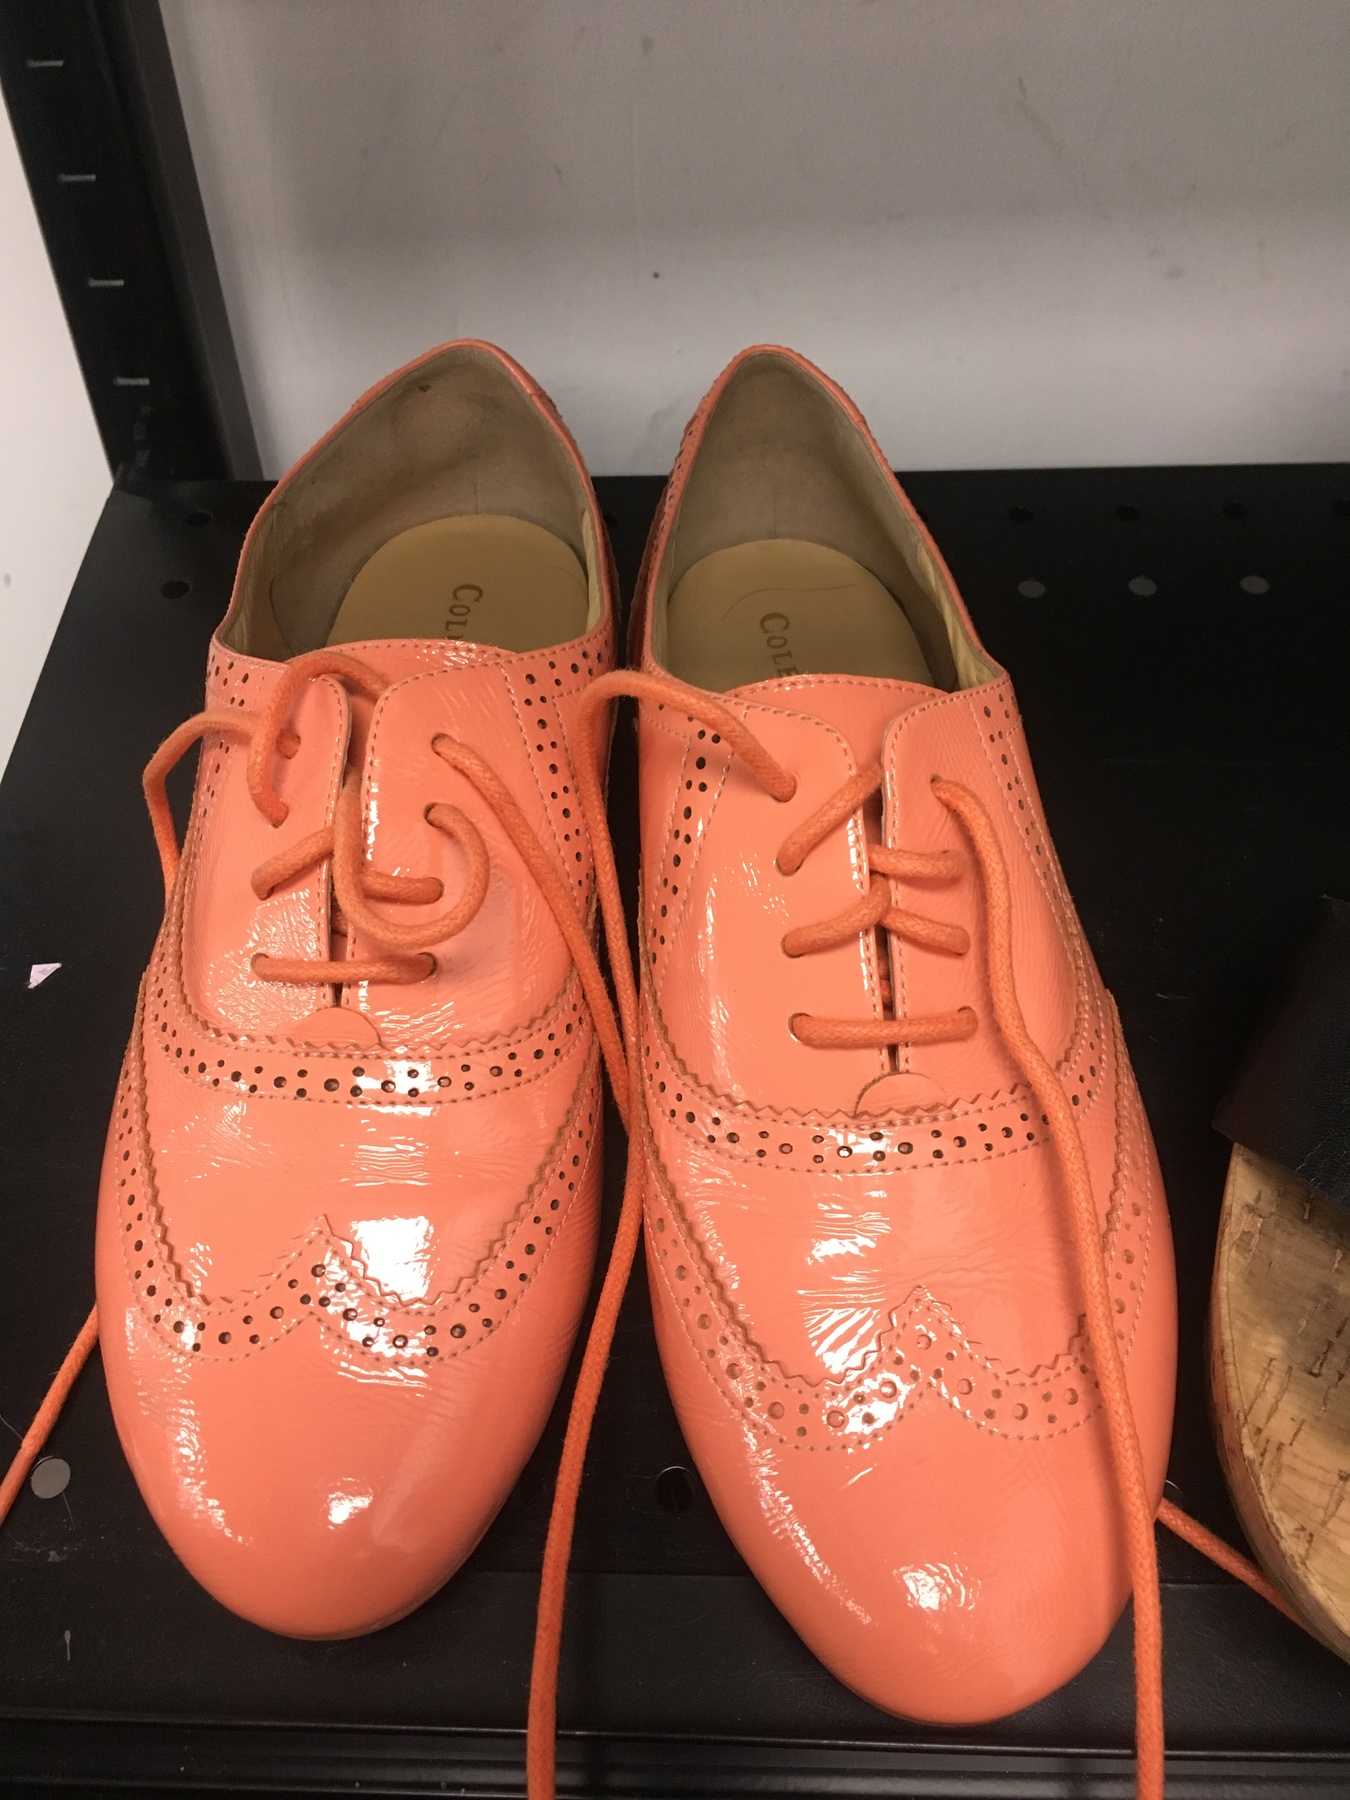 Coral colored Cole Hann oxfords found at Goodwill NYC